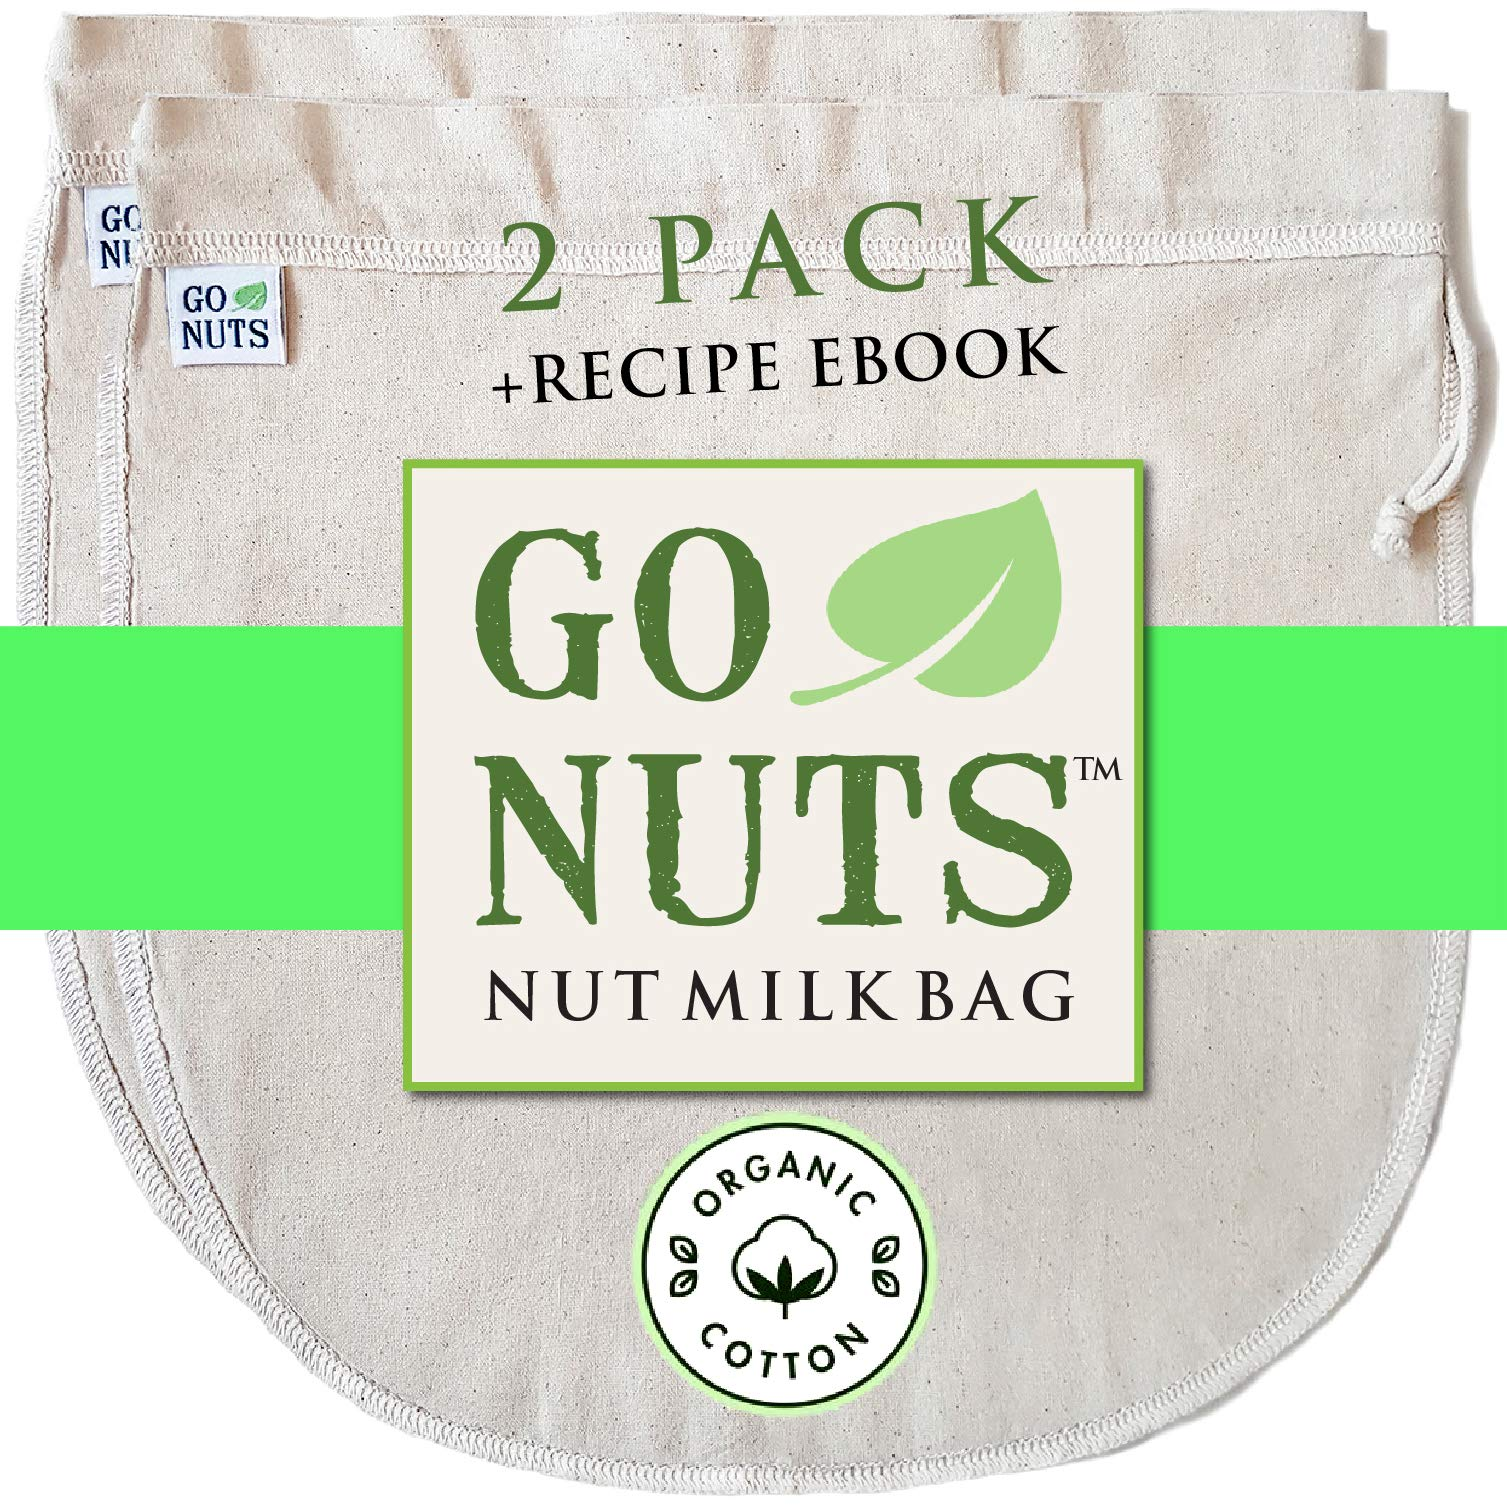 2 PACK ORGANIC COTTON Nut Milk